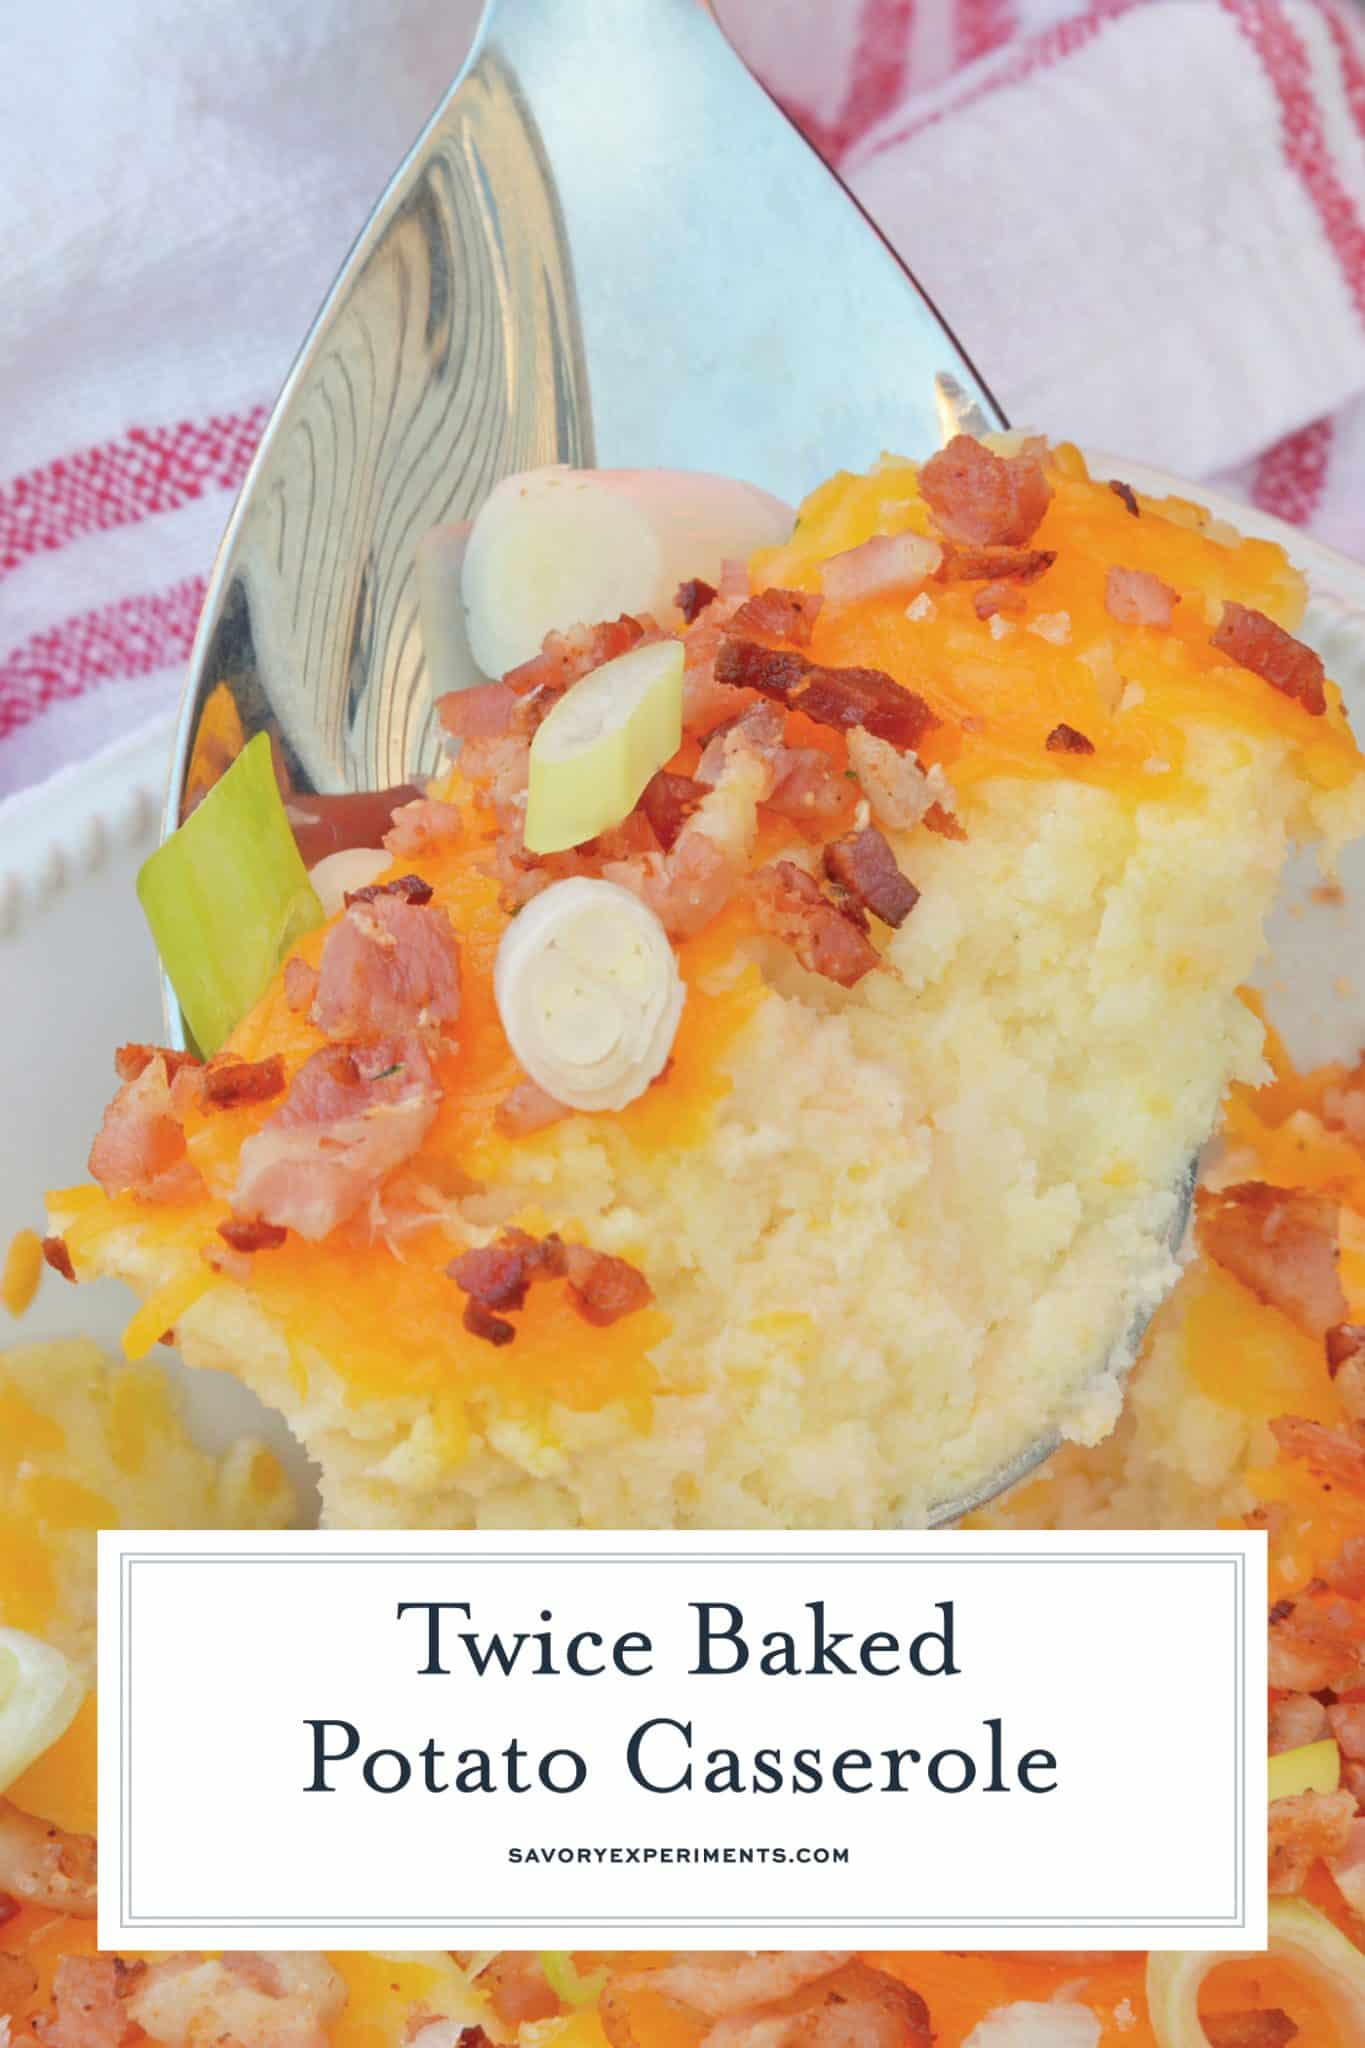 You will love how simple it is to make this easy Twice Baked Potato Casserole! Everything you love about twice baked potatoes is wrapped up into one easy dish. #twicebakedpotatoes #potatocasserole www.savoryexperiments.com